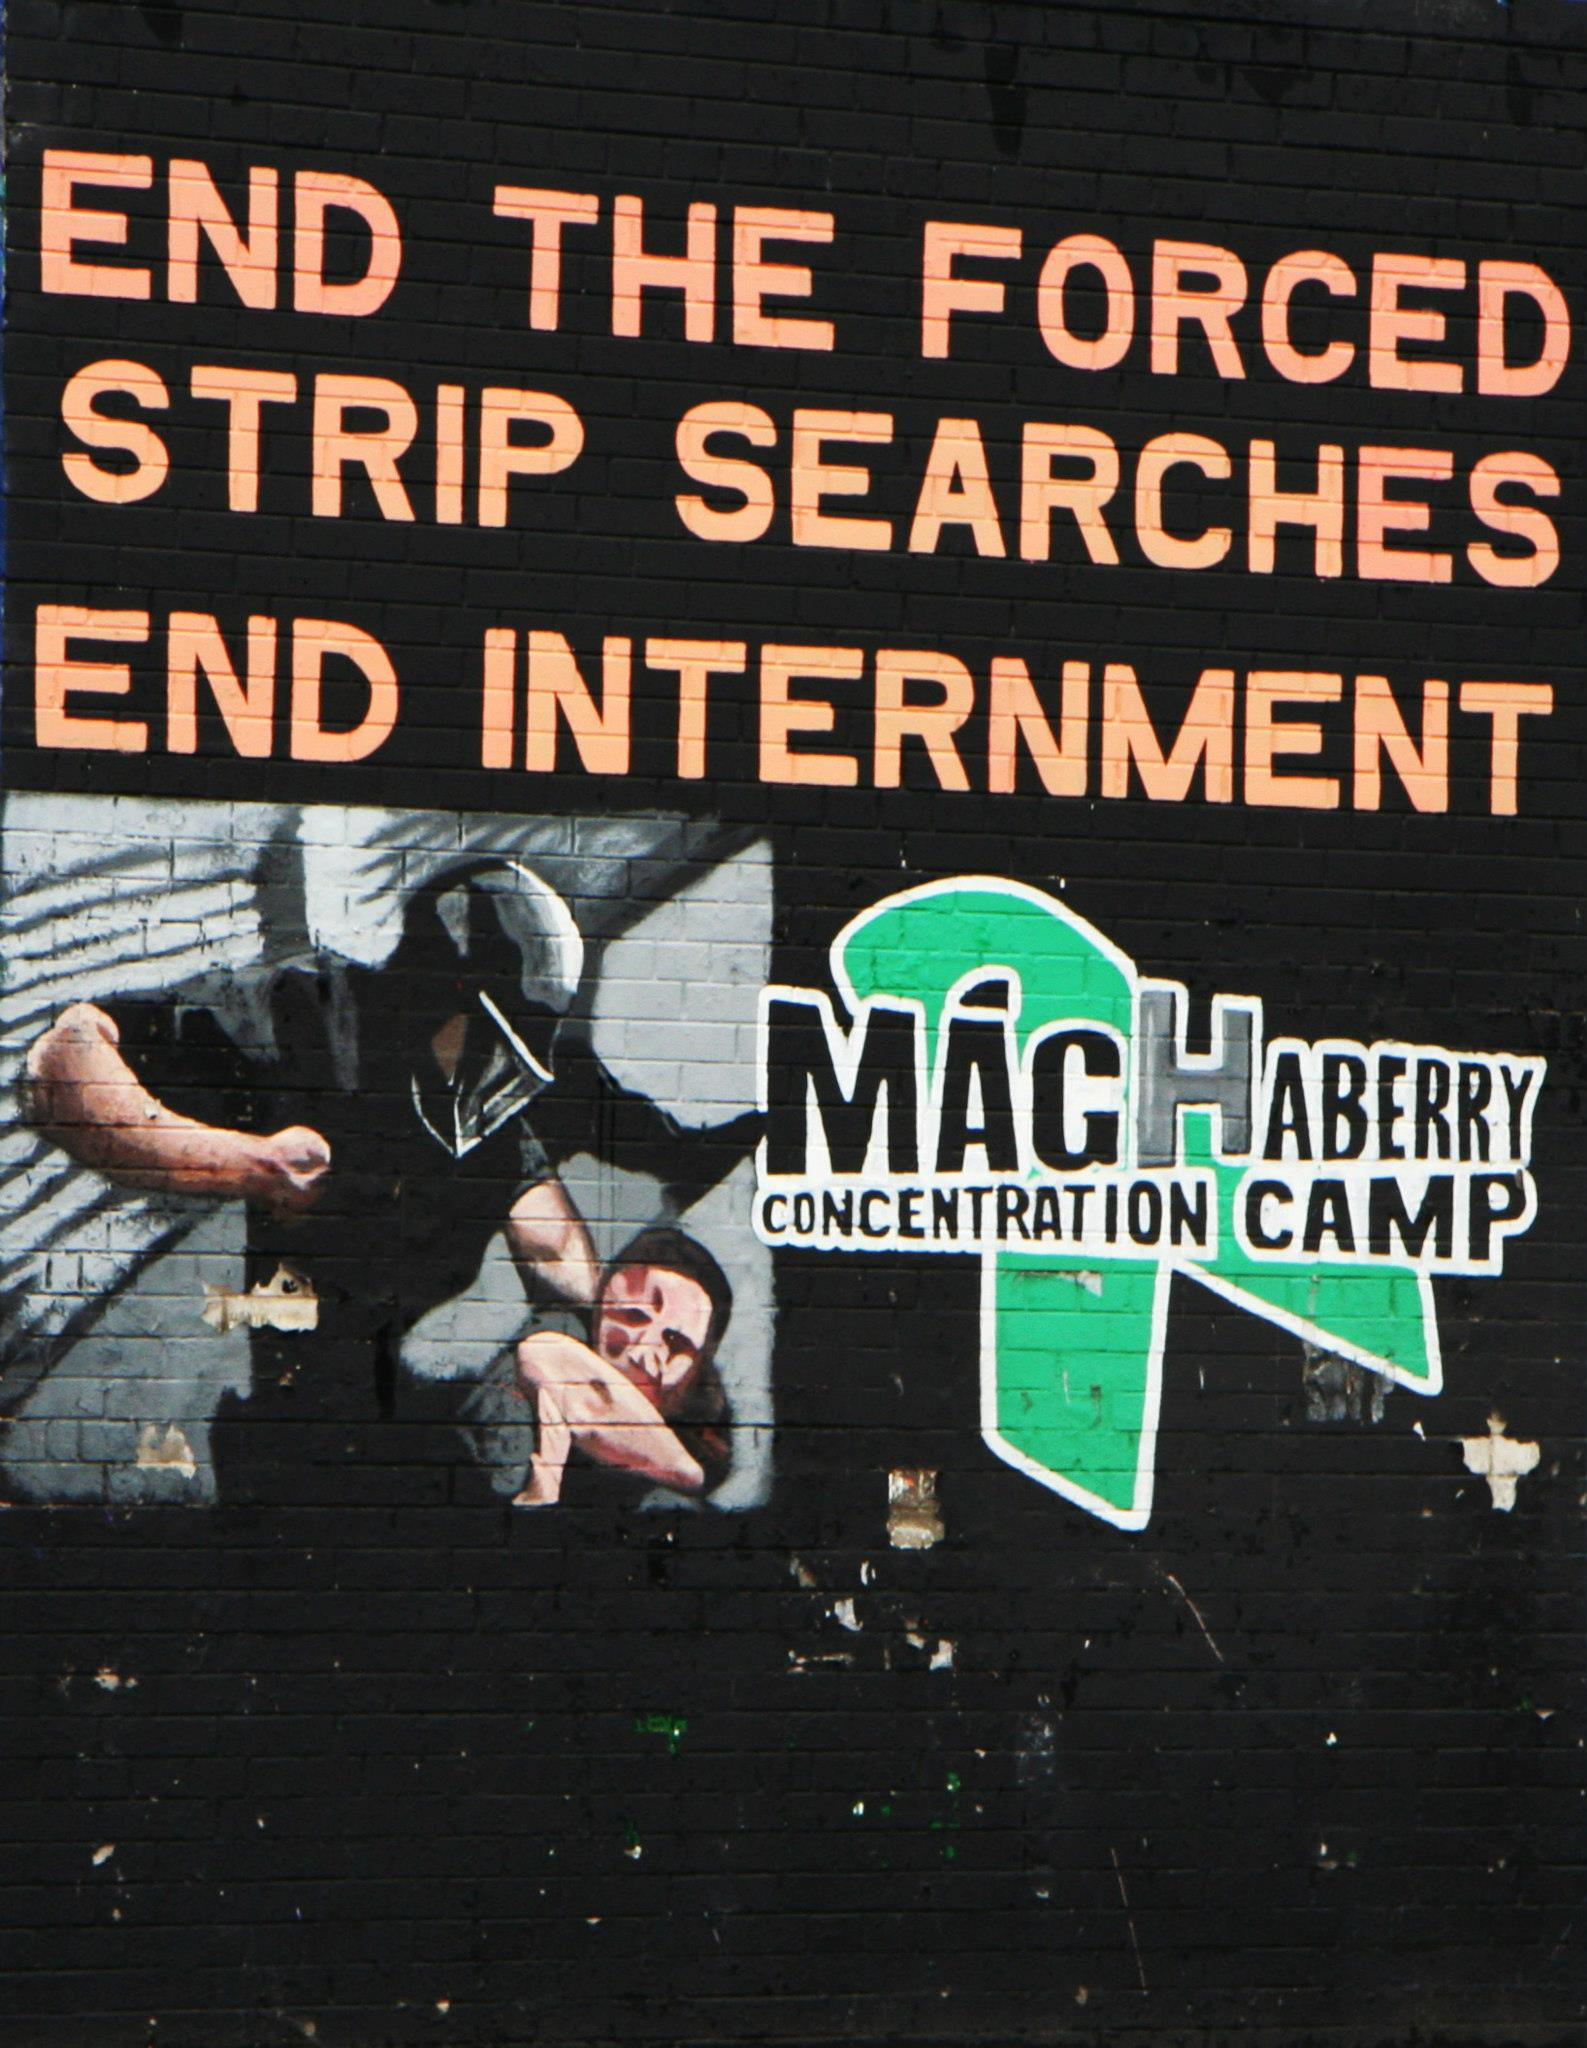 'End the forced strip searches, end internment'